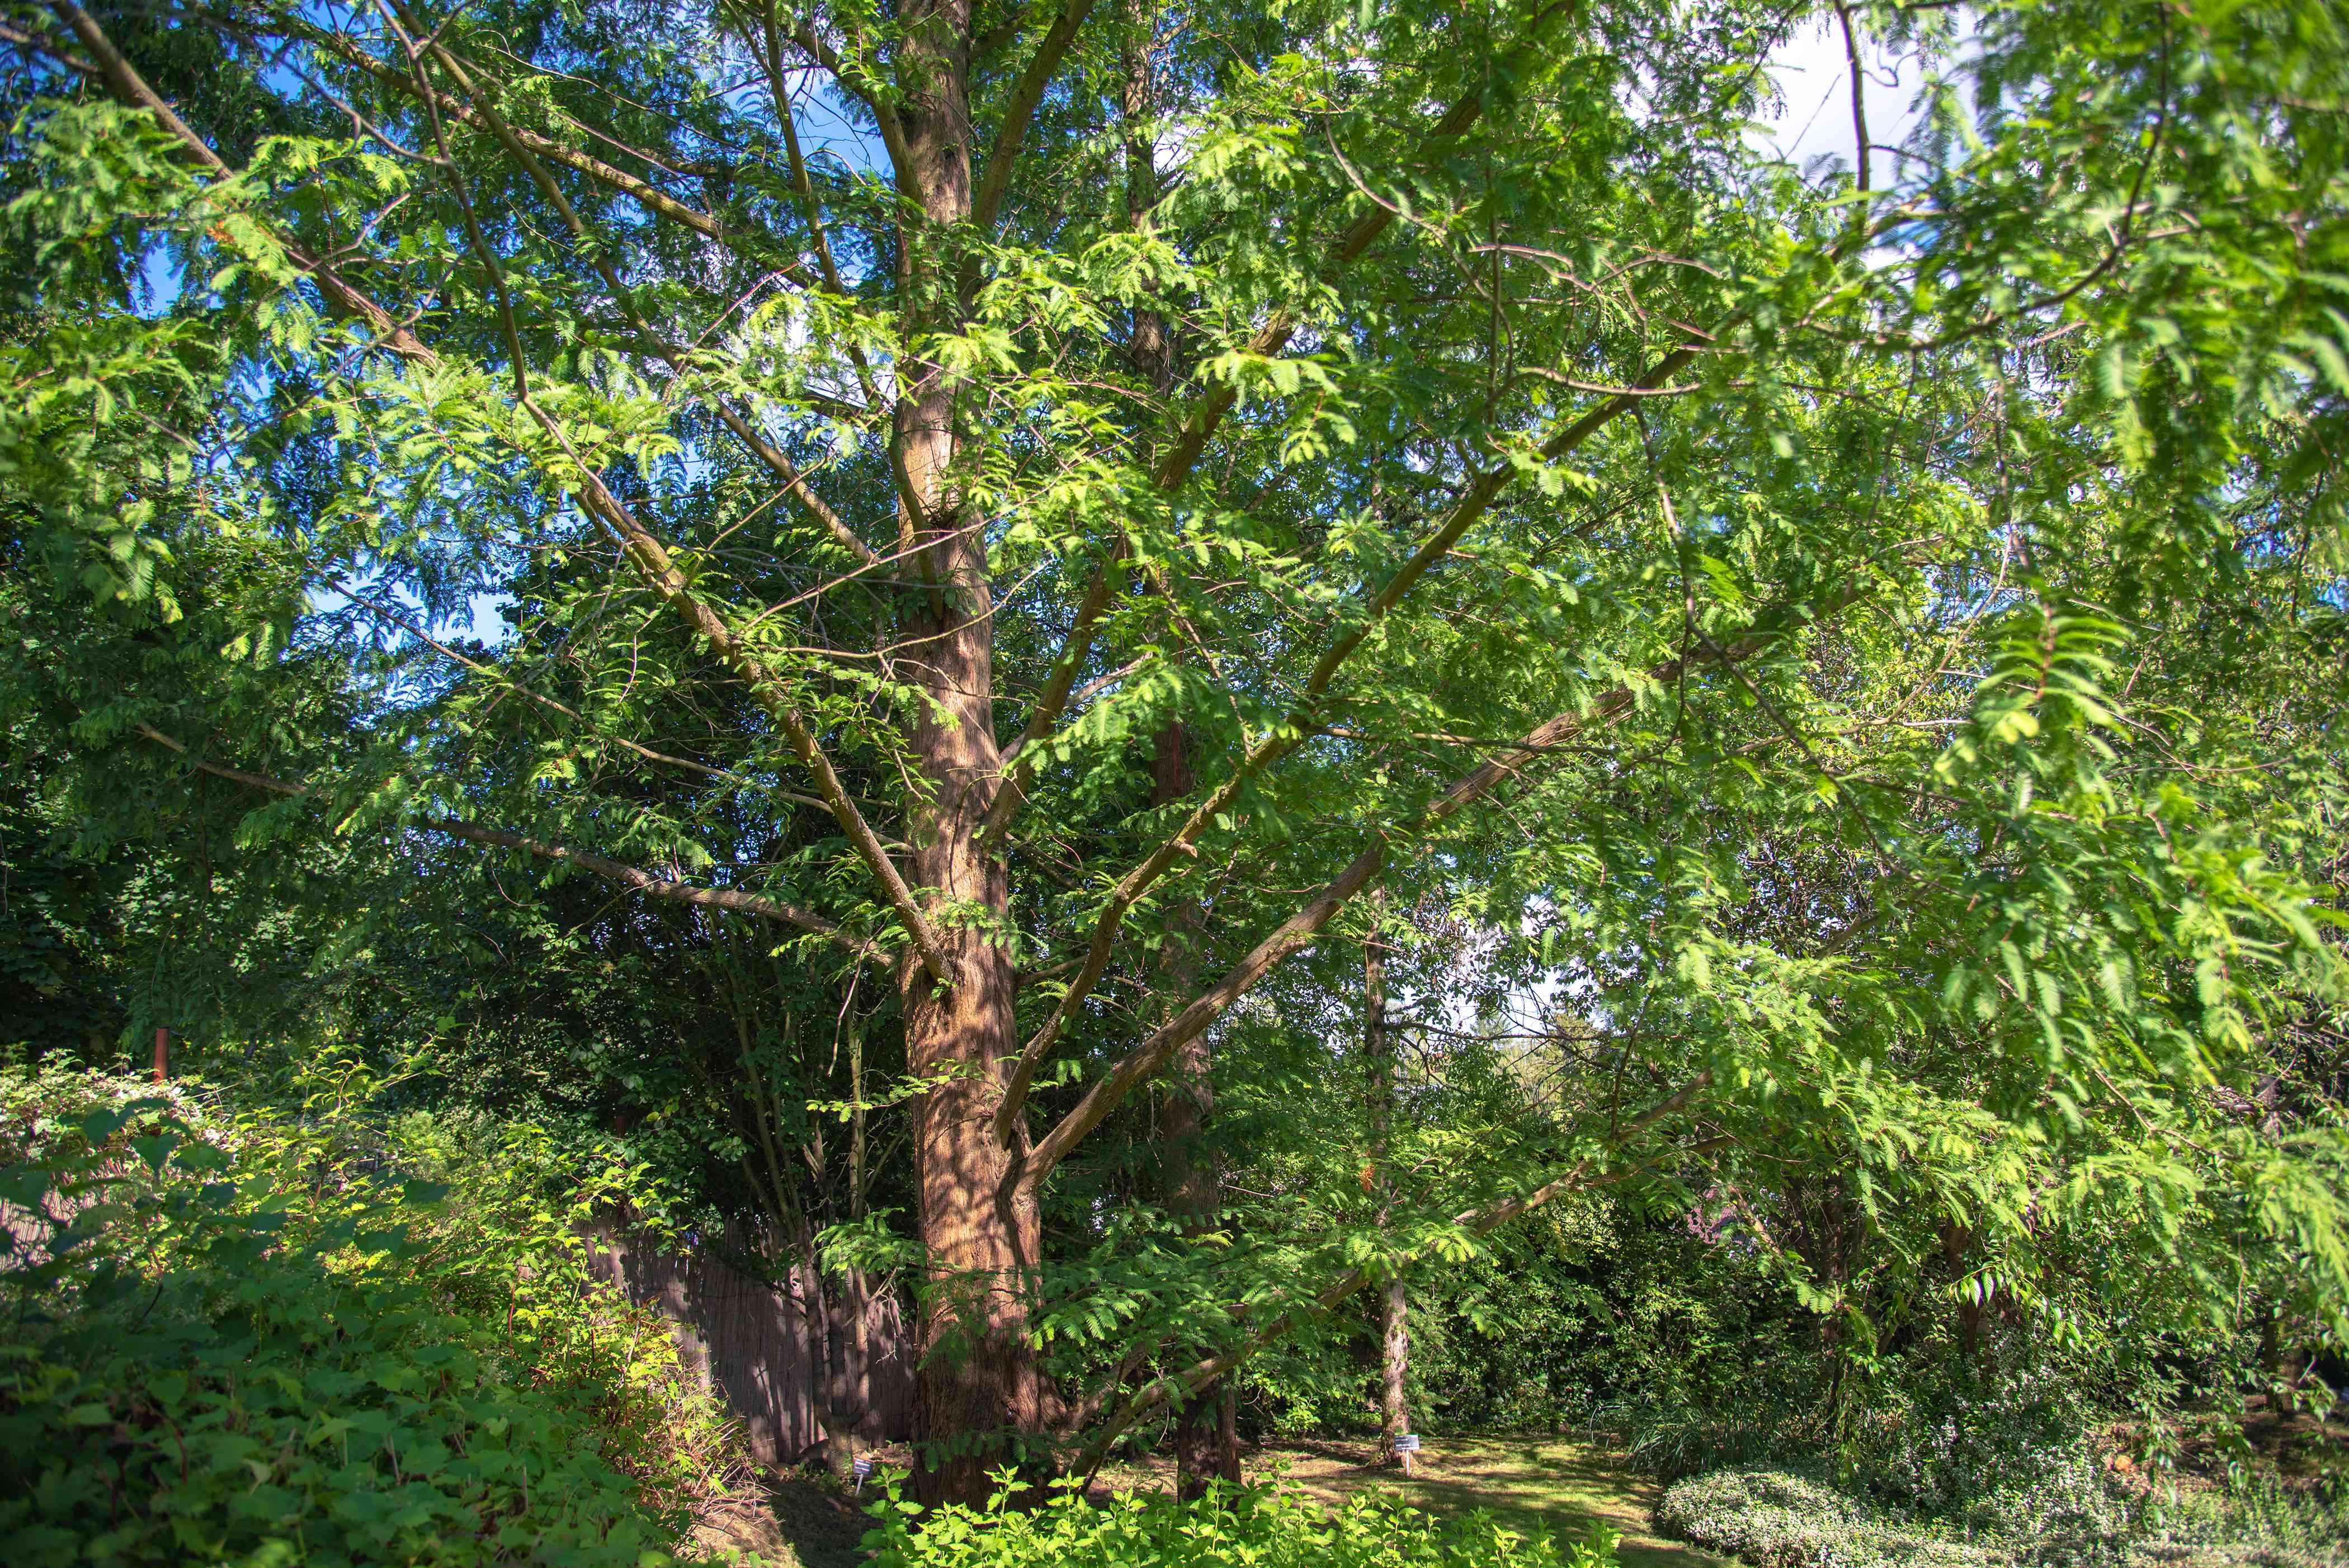 Dawn redwood tree with extended branches with feathery, fine-textured needles